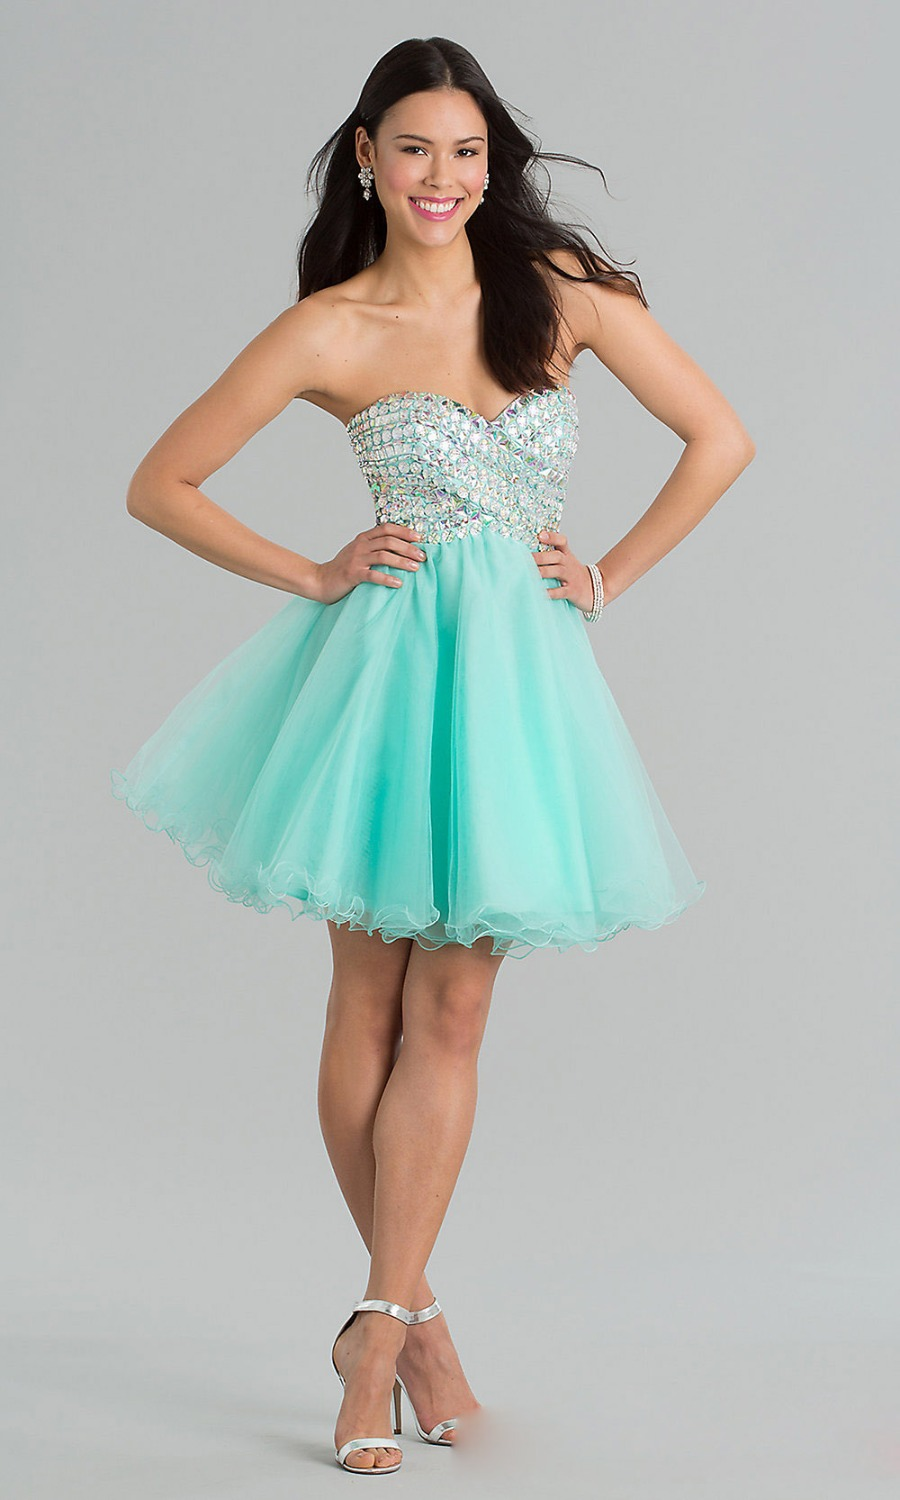 Glaring Crystal Mint Green Short Prom Dresses Sweetheart Mini Puffy ...